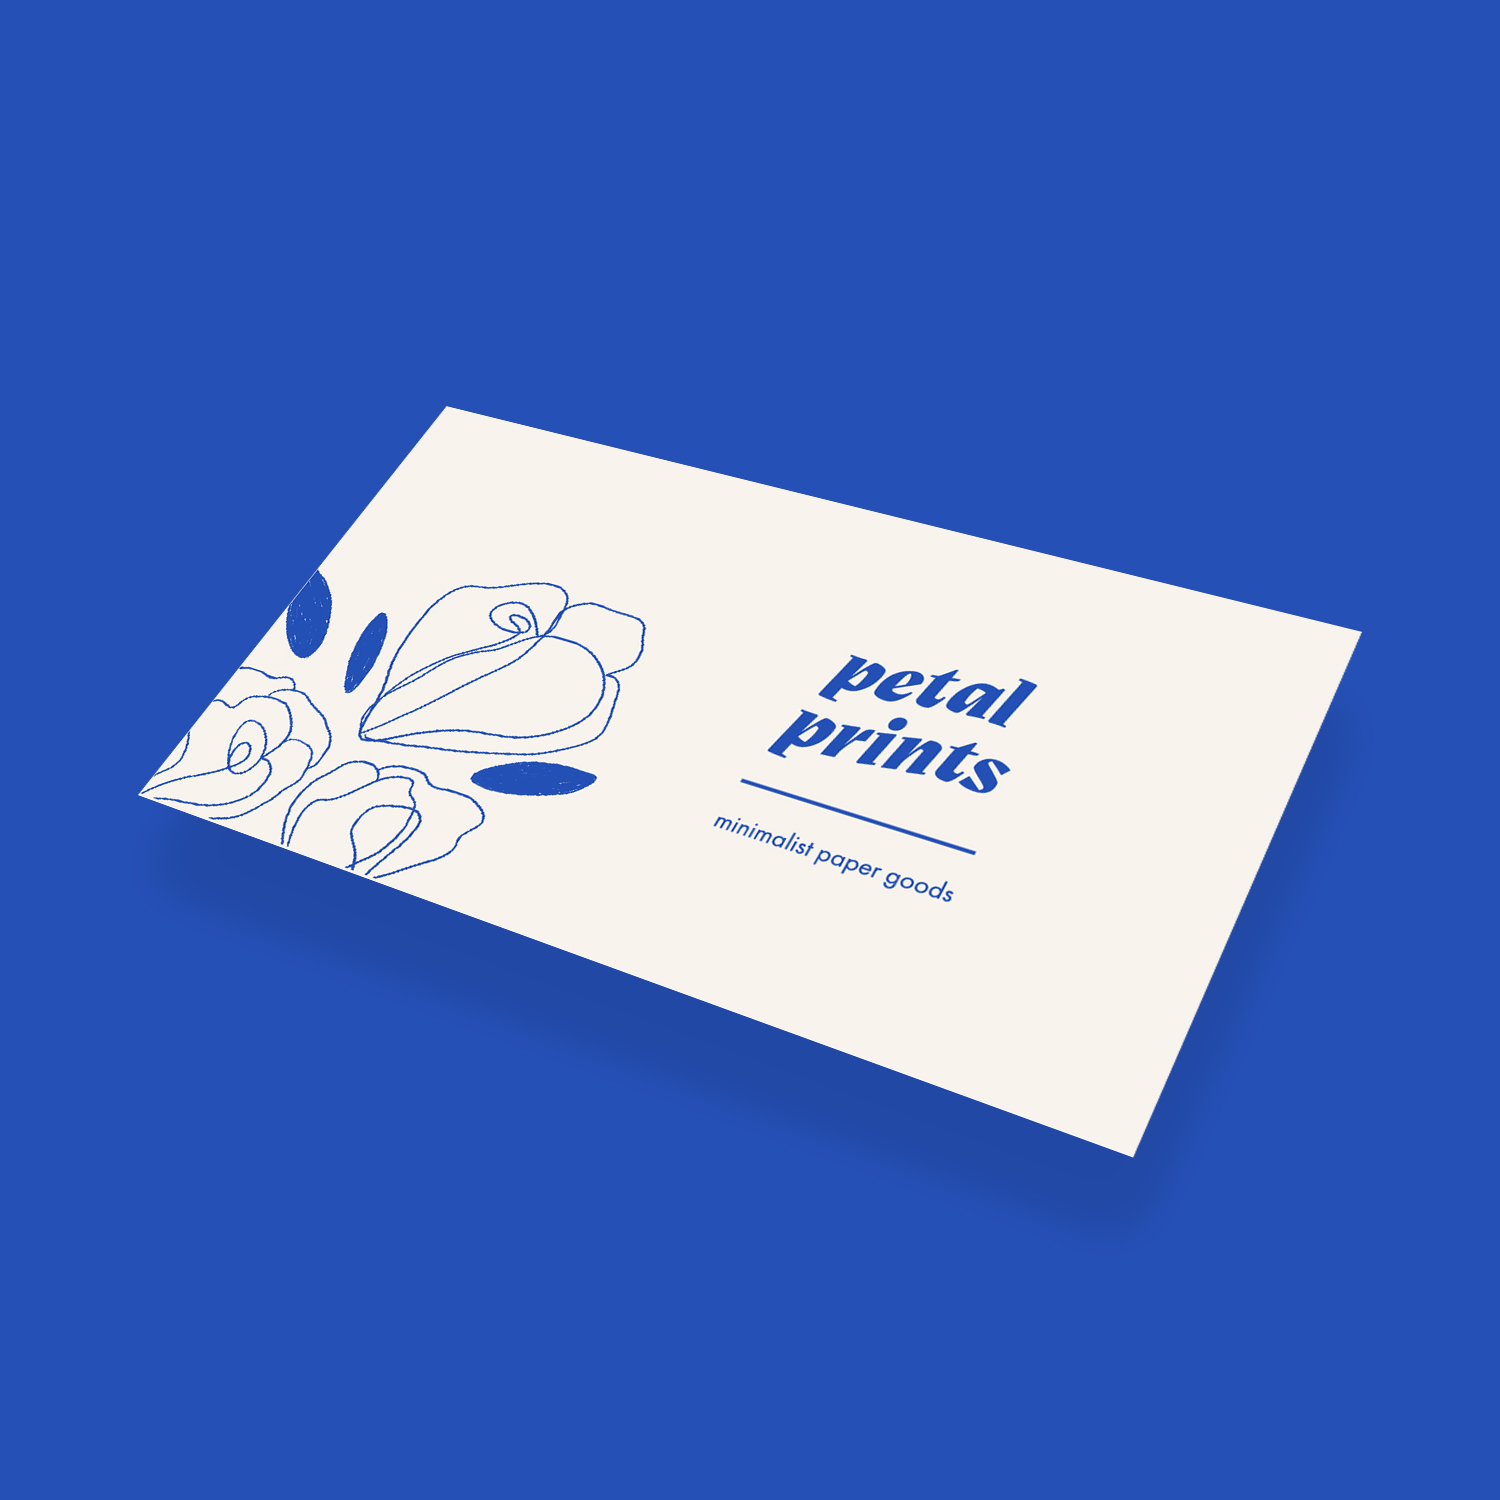 Business card application - front